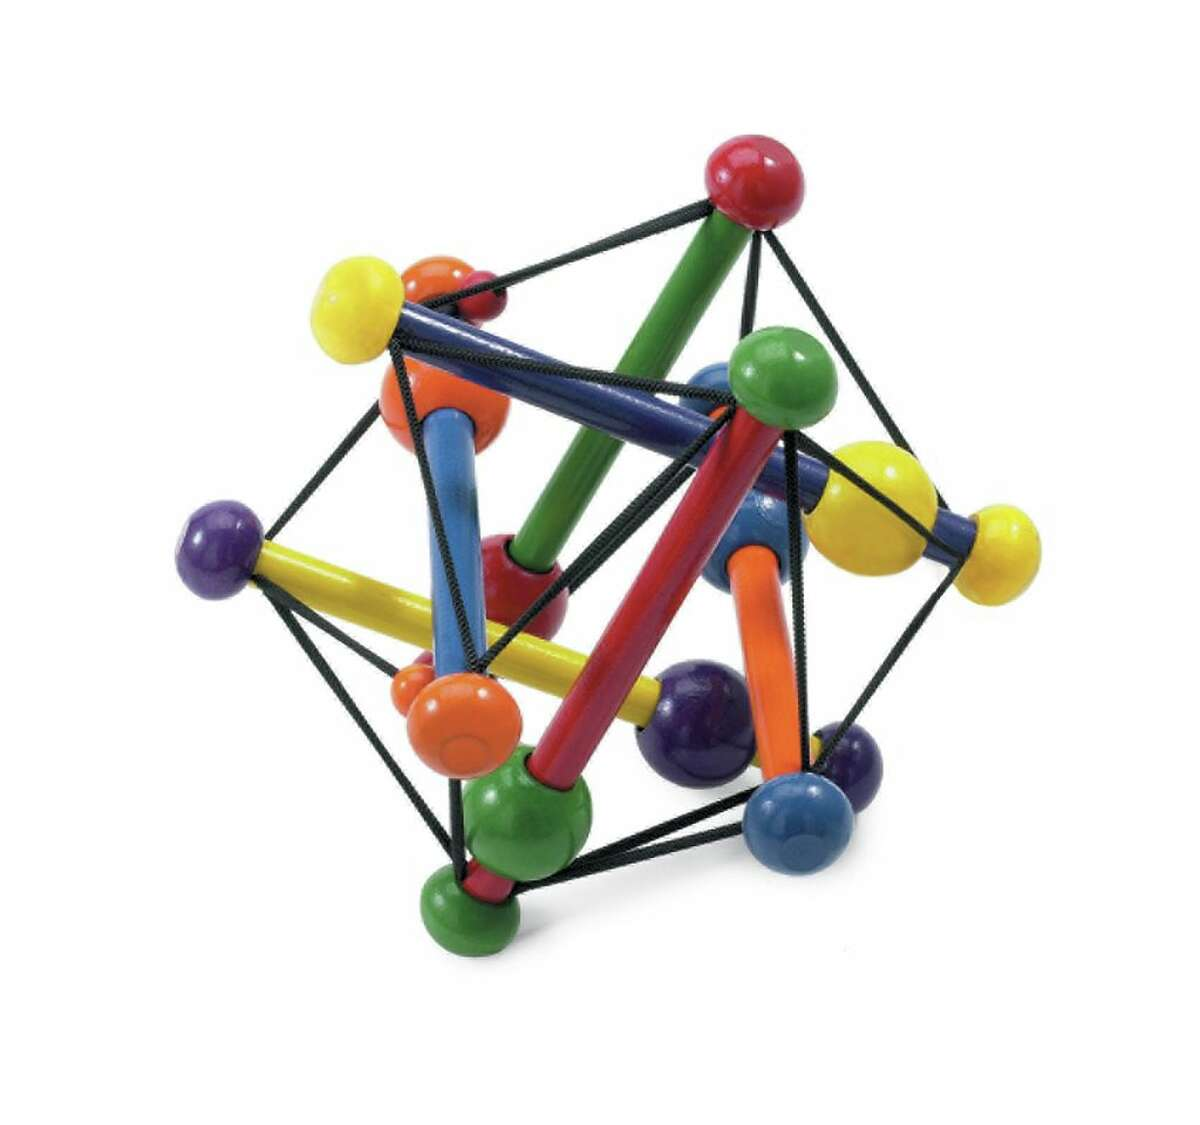 Classic play Skwish Classic by Manhattan Toy. 6 months-1 year, $16. Three decades ago the innovative Skwish was born - and this springy concoction of rebounding elastic and cheerfully jumping wooden beads has entertained babies ever since.